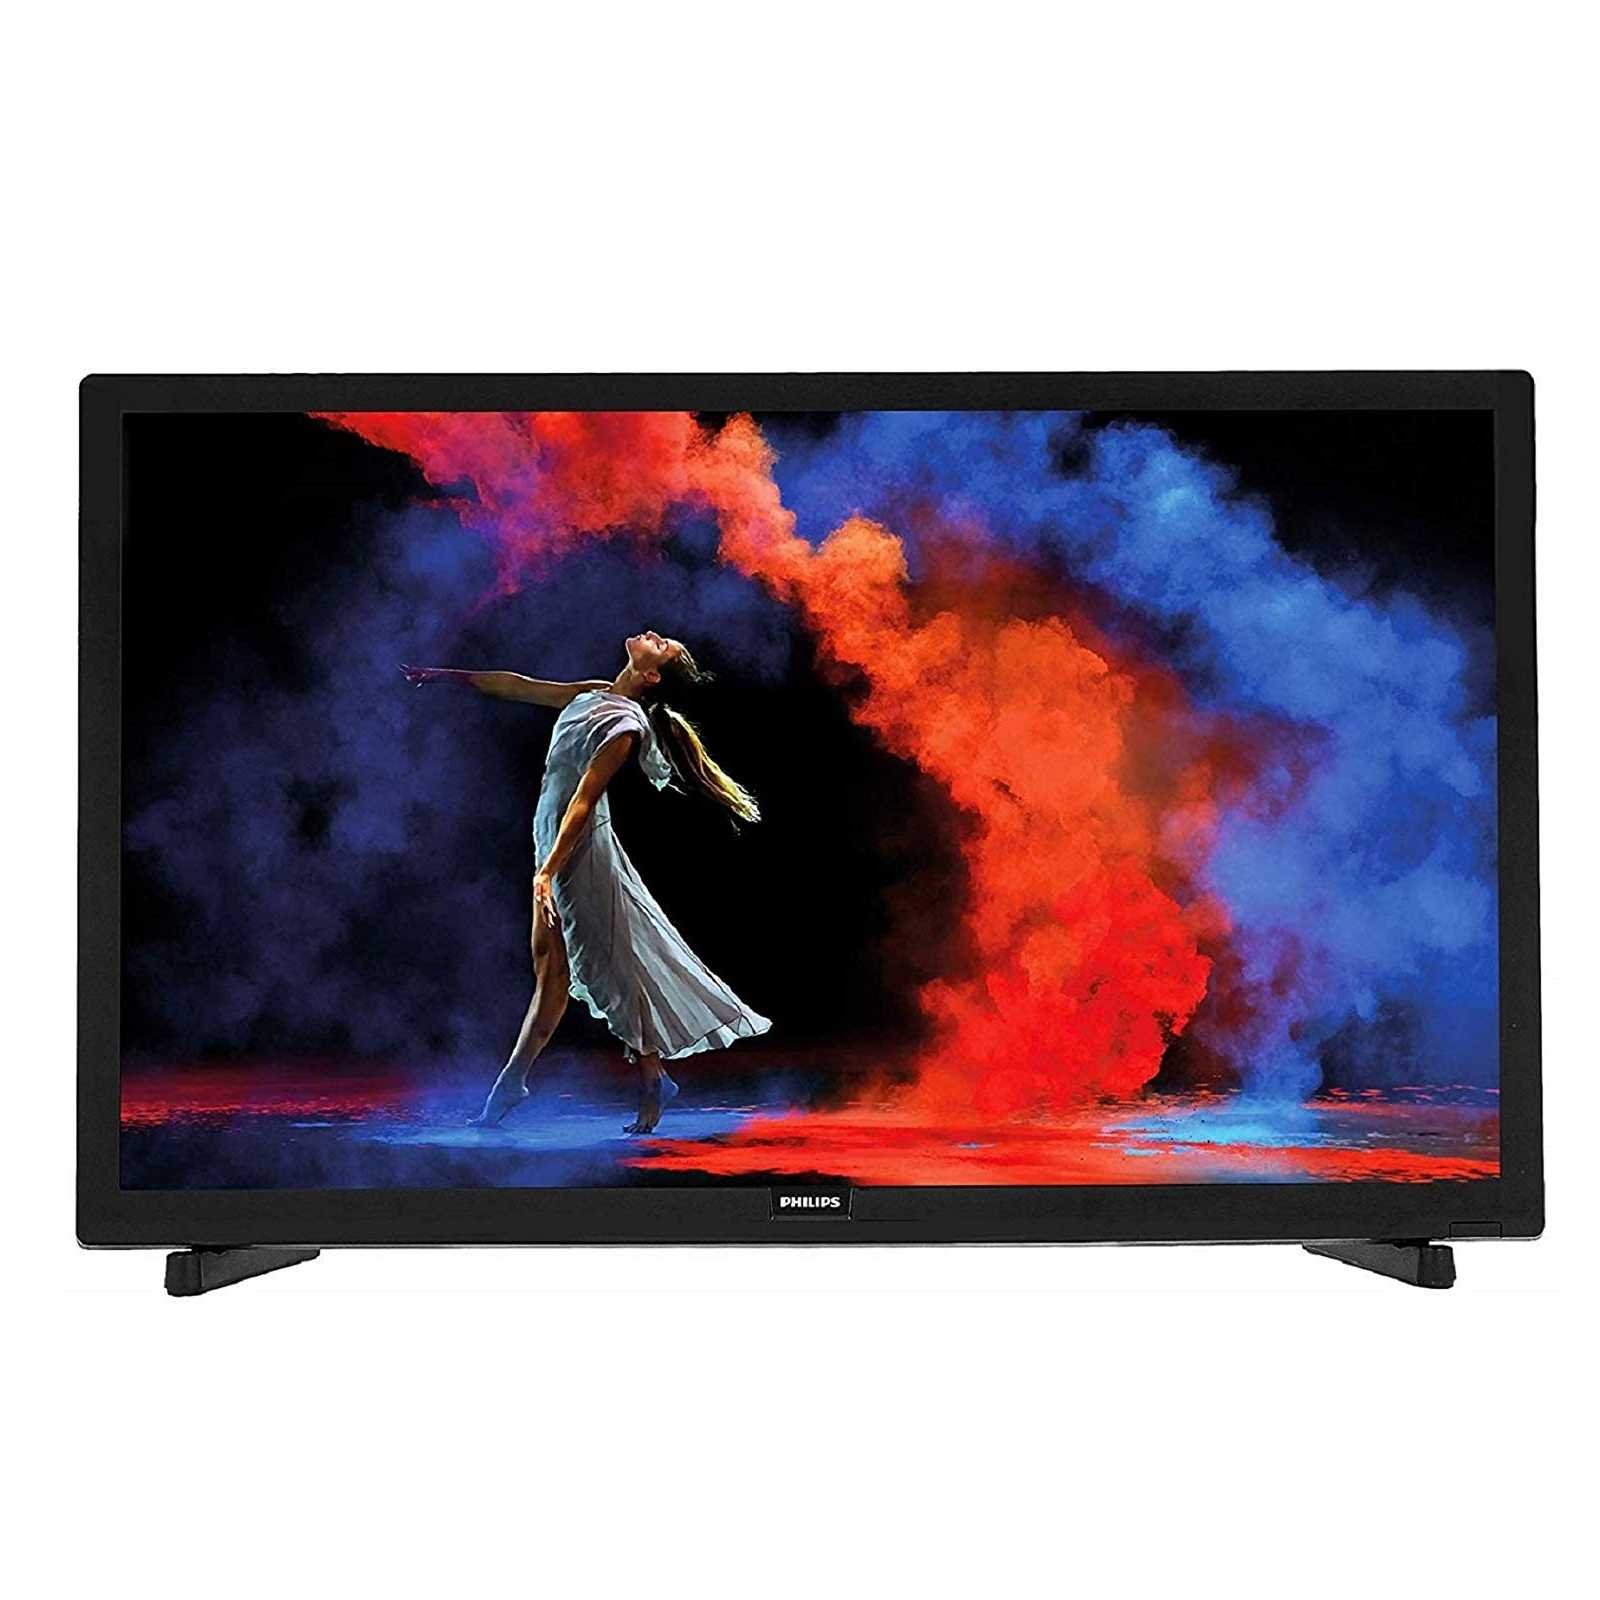 Philips 22PFT5403S 22 Inch Full HD LED Television